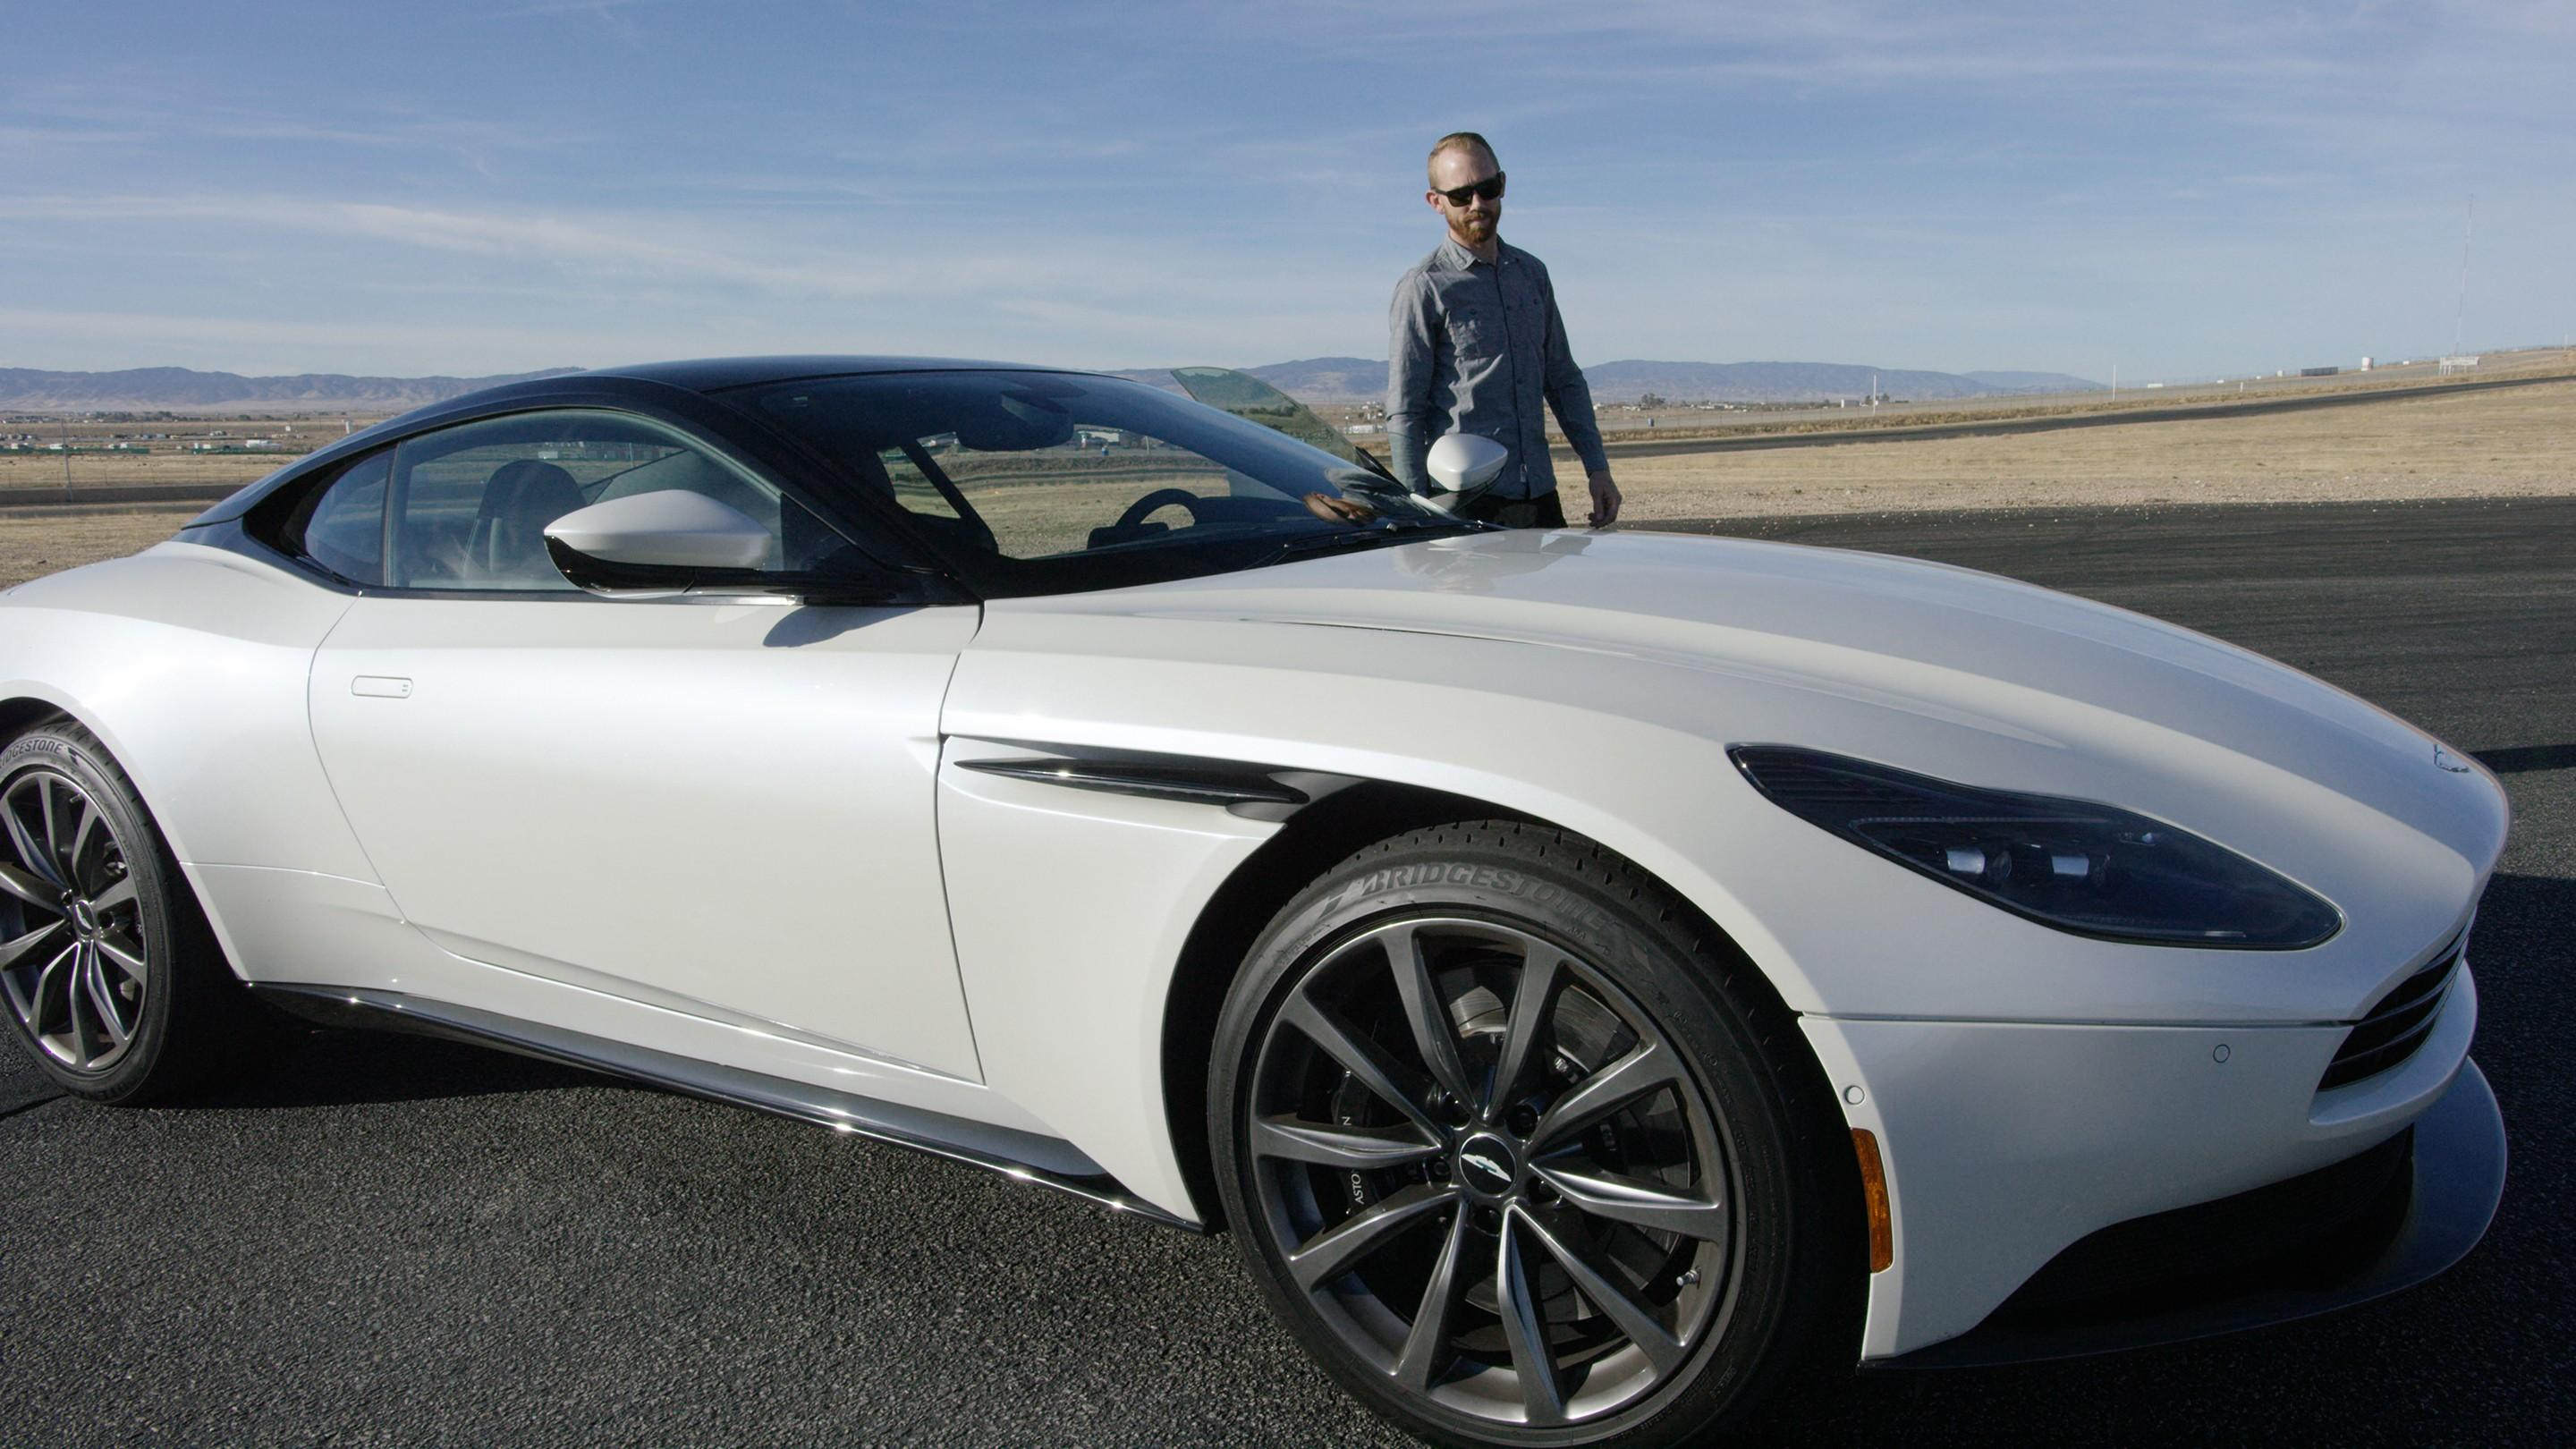 The 2018 Aston Martin DB11 Thrills